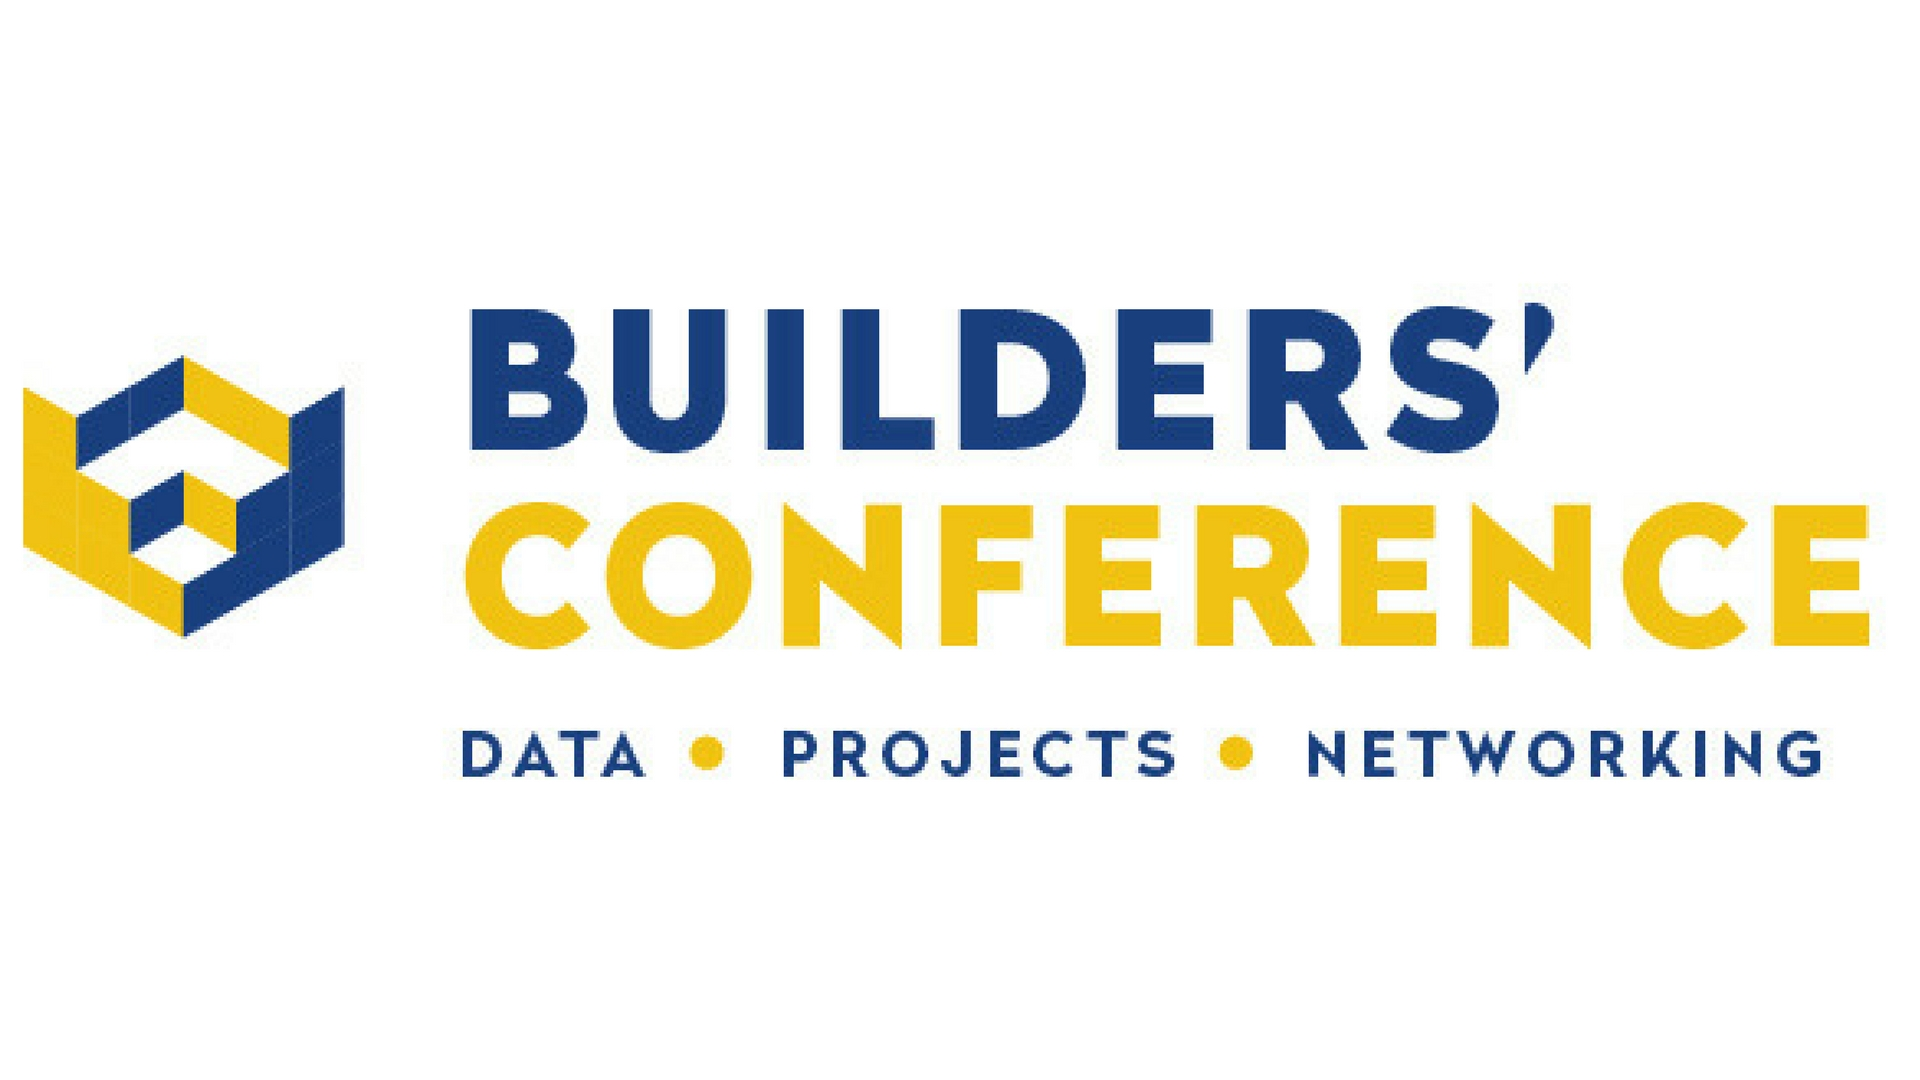 A view on 2019 from Builders' Conference